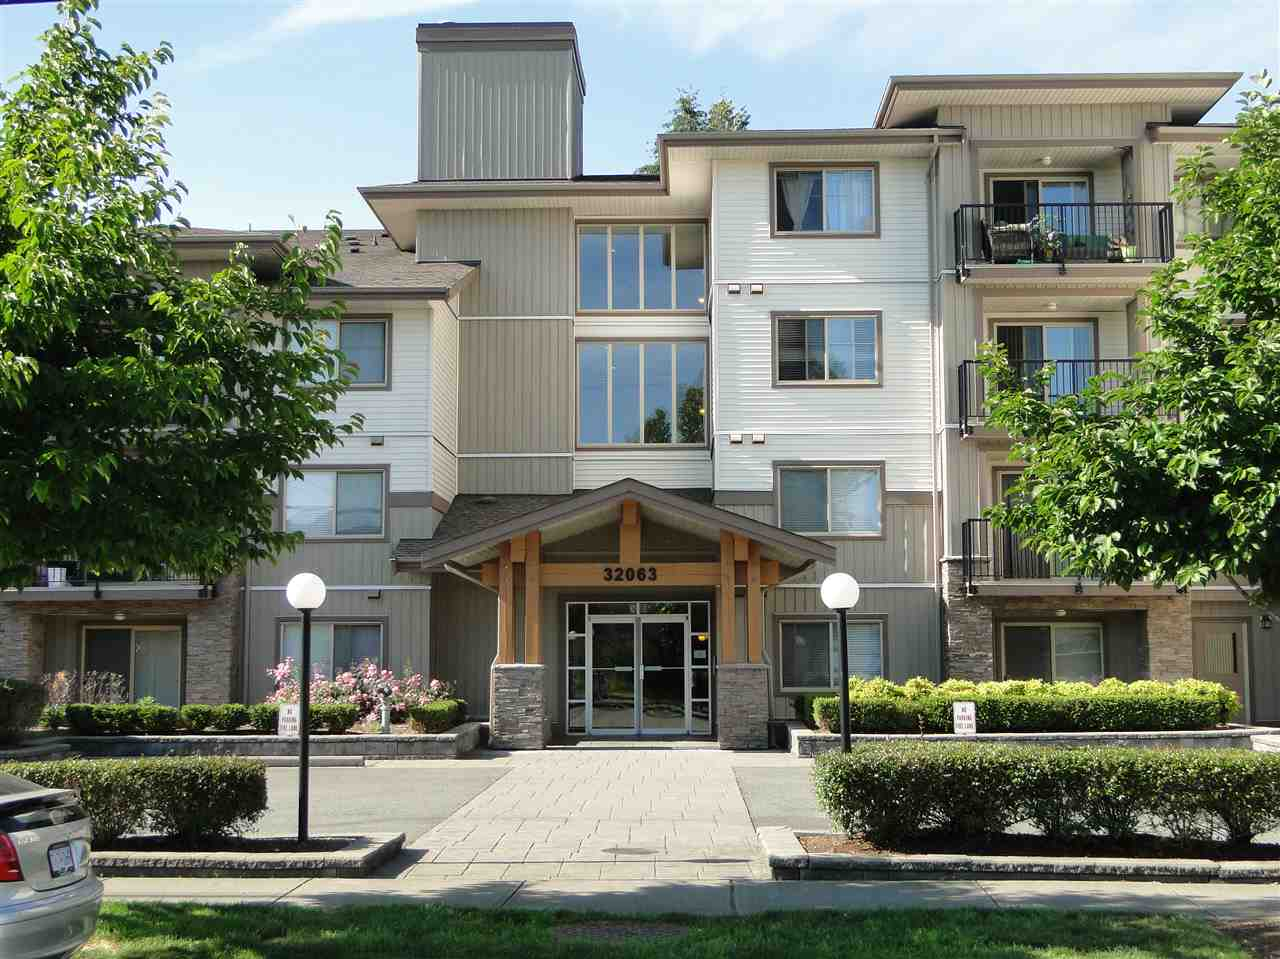 "Main Photo: 309 32063 MT WADDINGTON Avenue in Abbotsford: Abbotsford West Condo for sale in ""The Waddington"" : MLS® # R2078577"